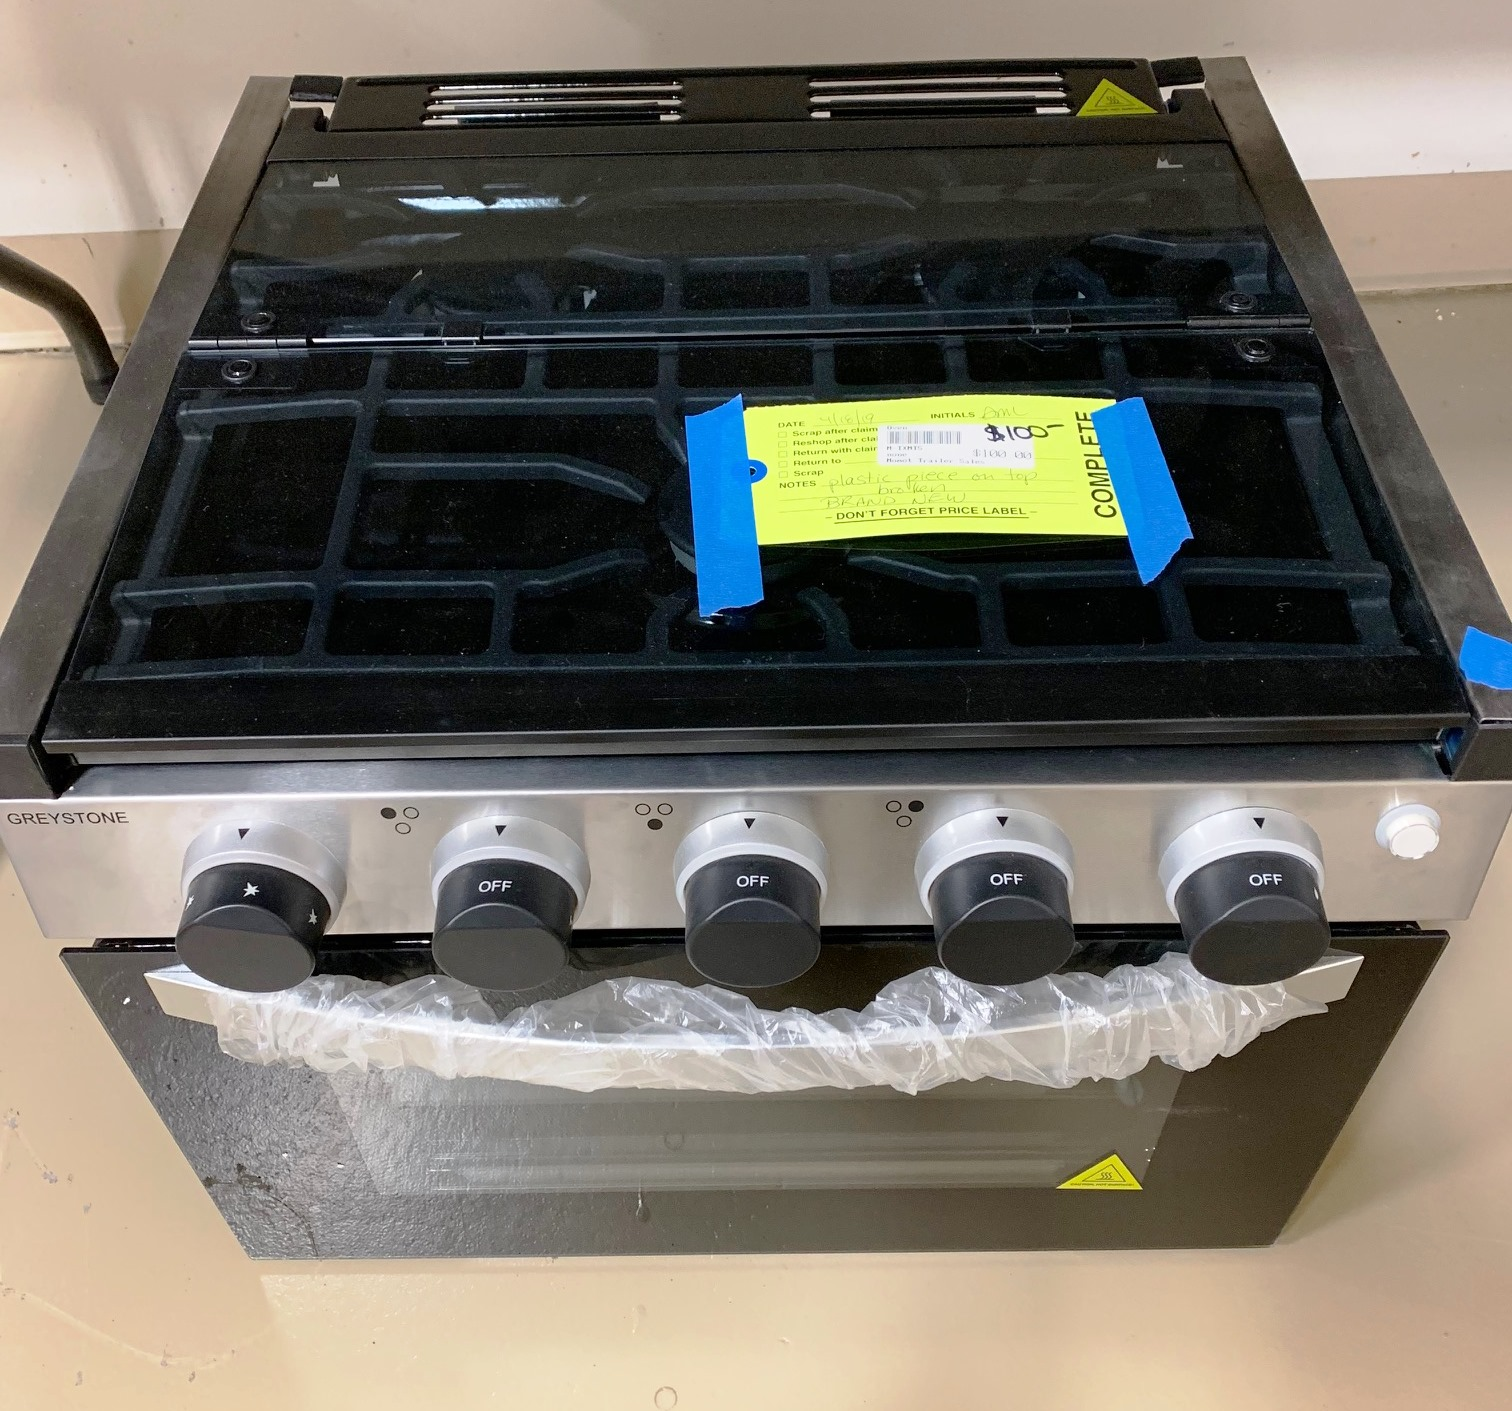 Oven on Sale for $100!